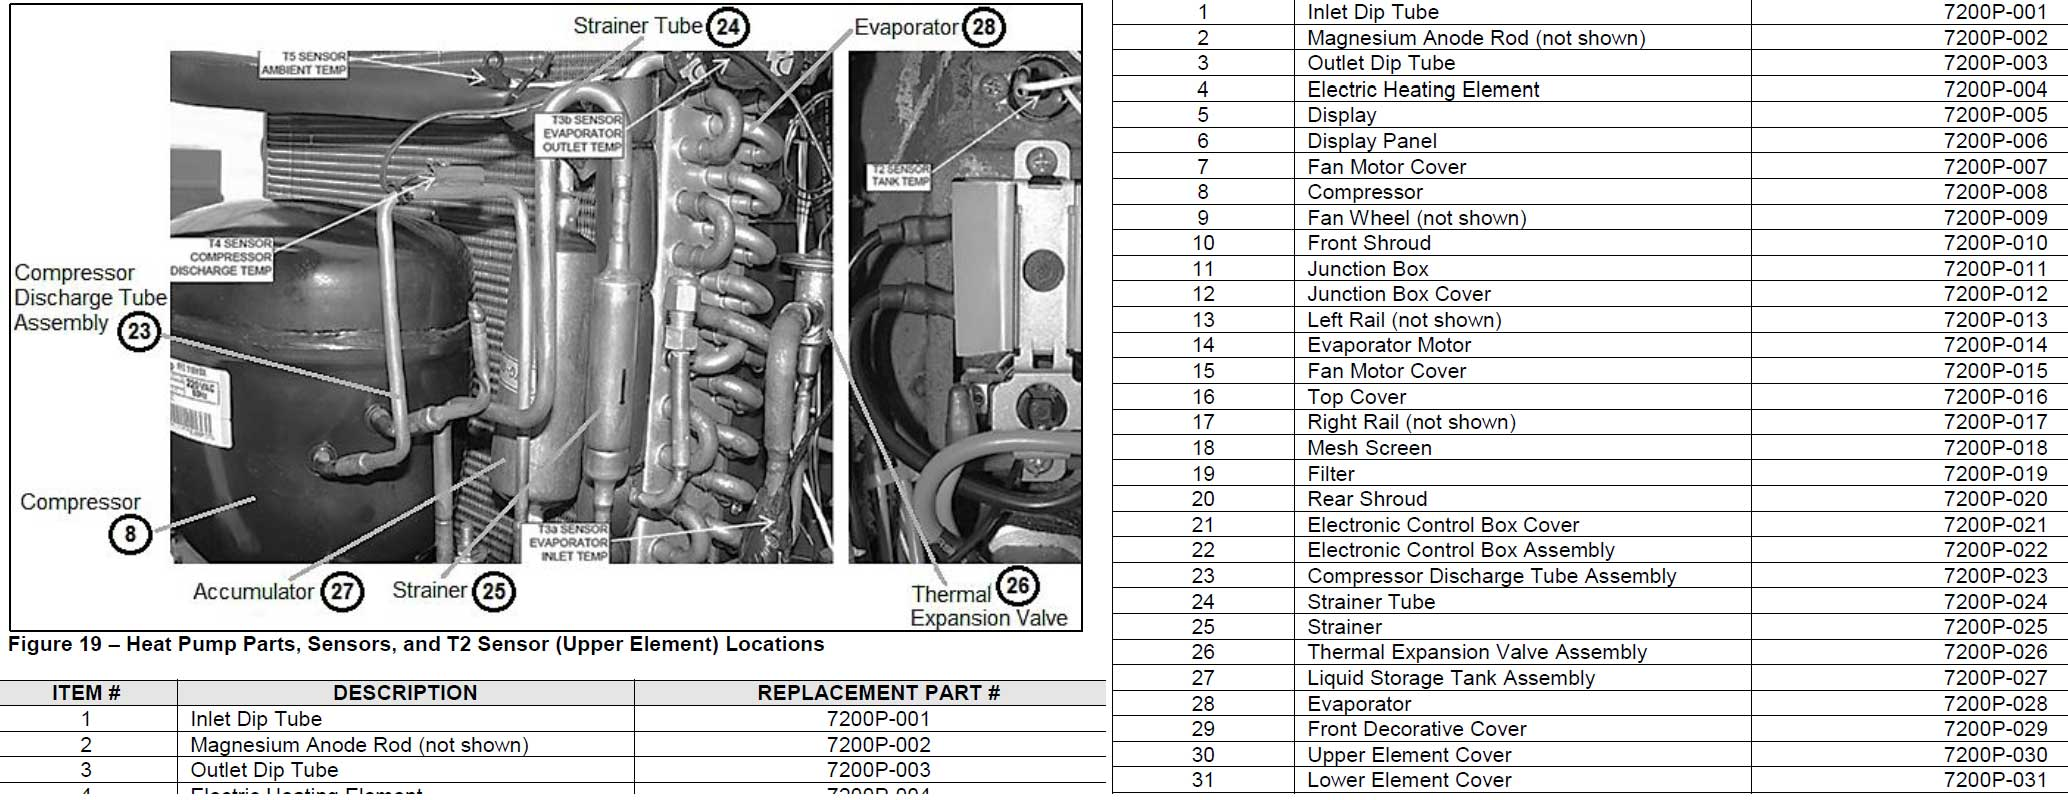 HTP parts wiring diagram for rheem heat pump readingrat net rheem manuals wiring diagrams at mifinder.co